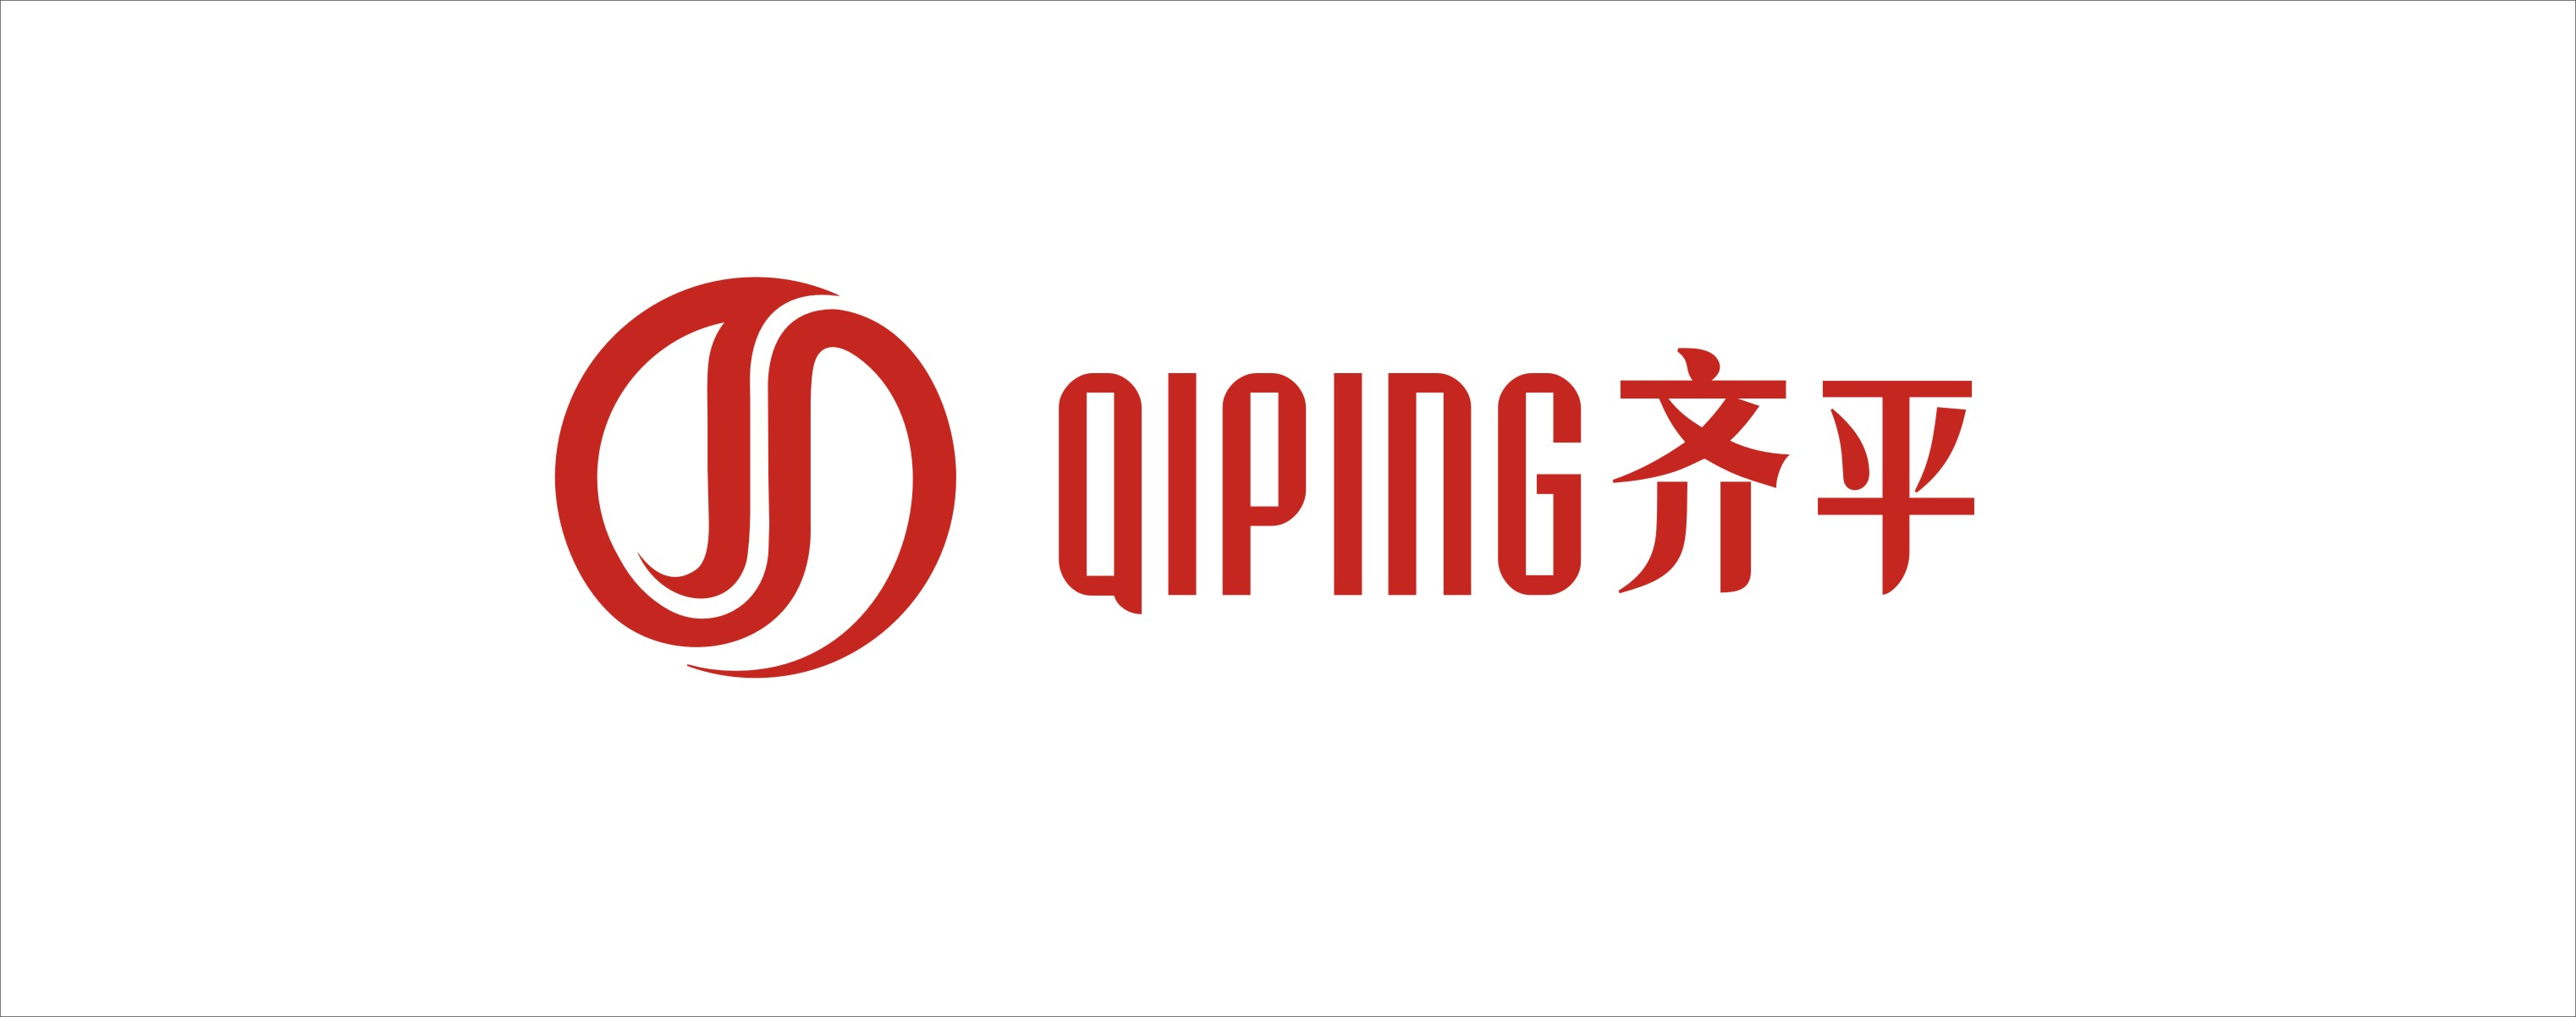 Wenzhou Qiping Pet Nutrition Technology Co., Ltd